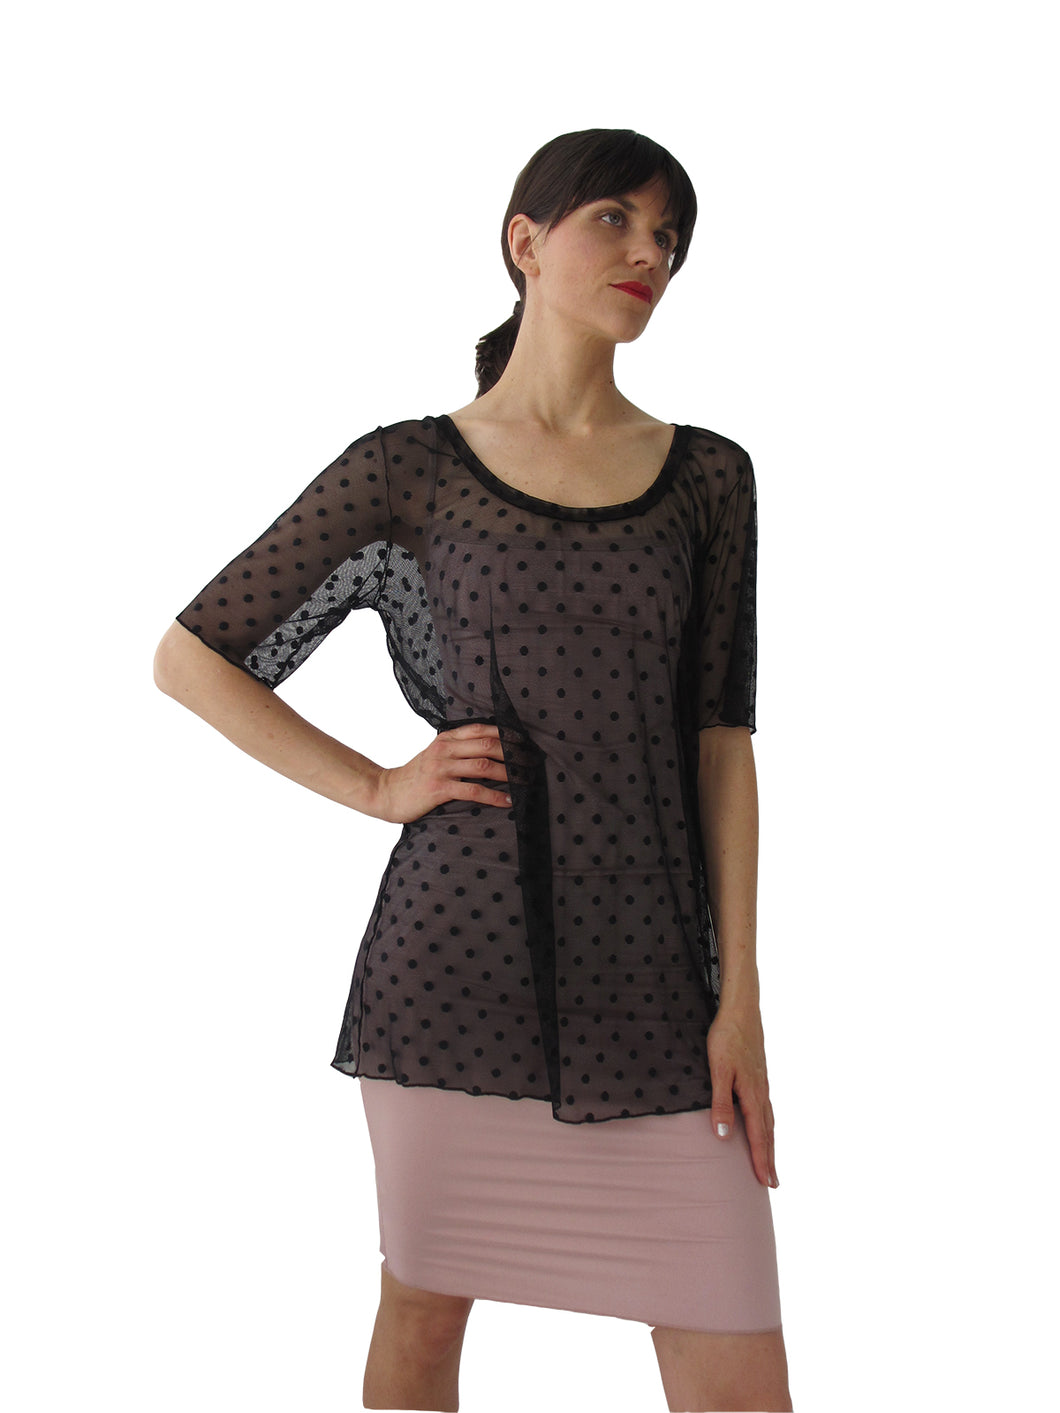 THE POLKA DOT MESH TEE - SCOOP NECK